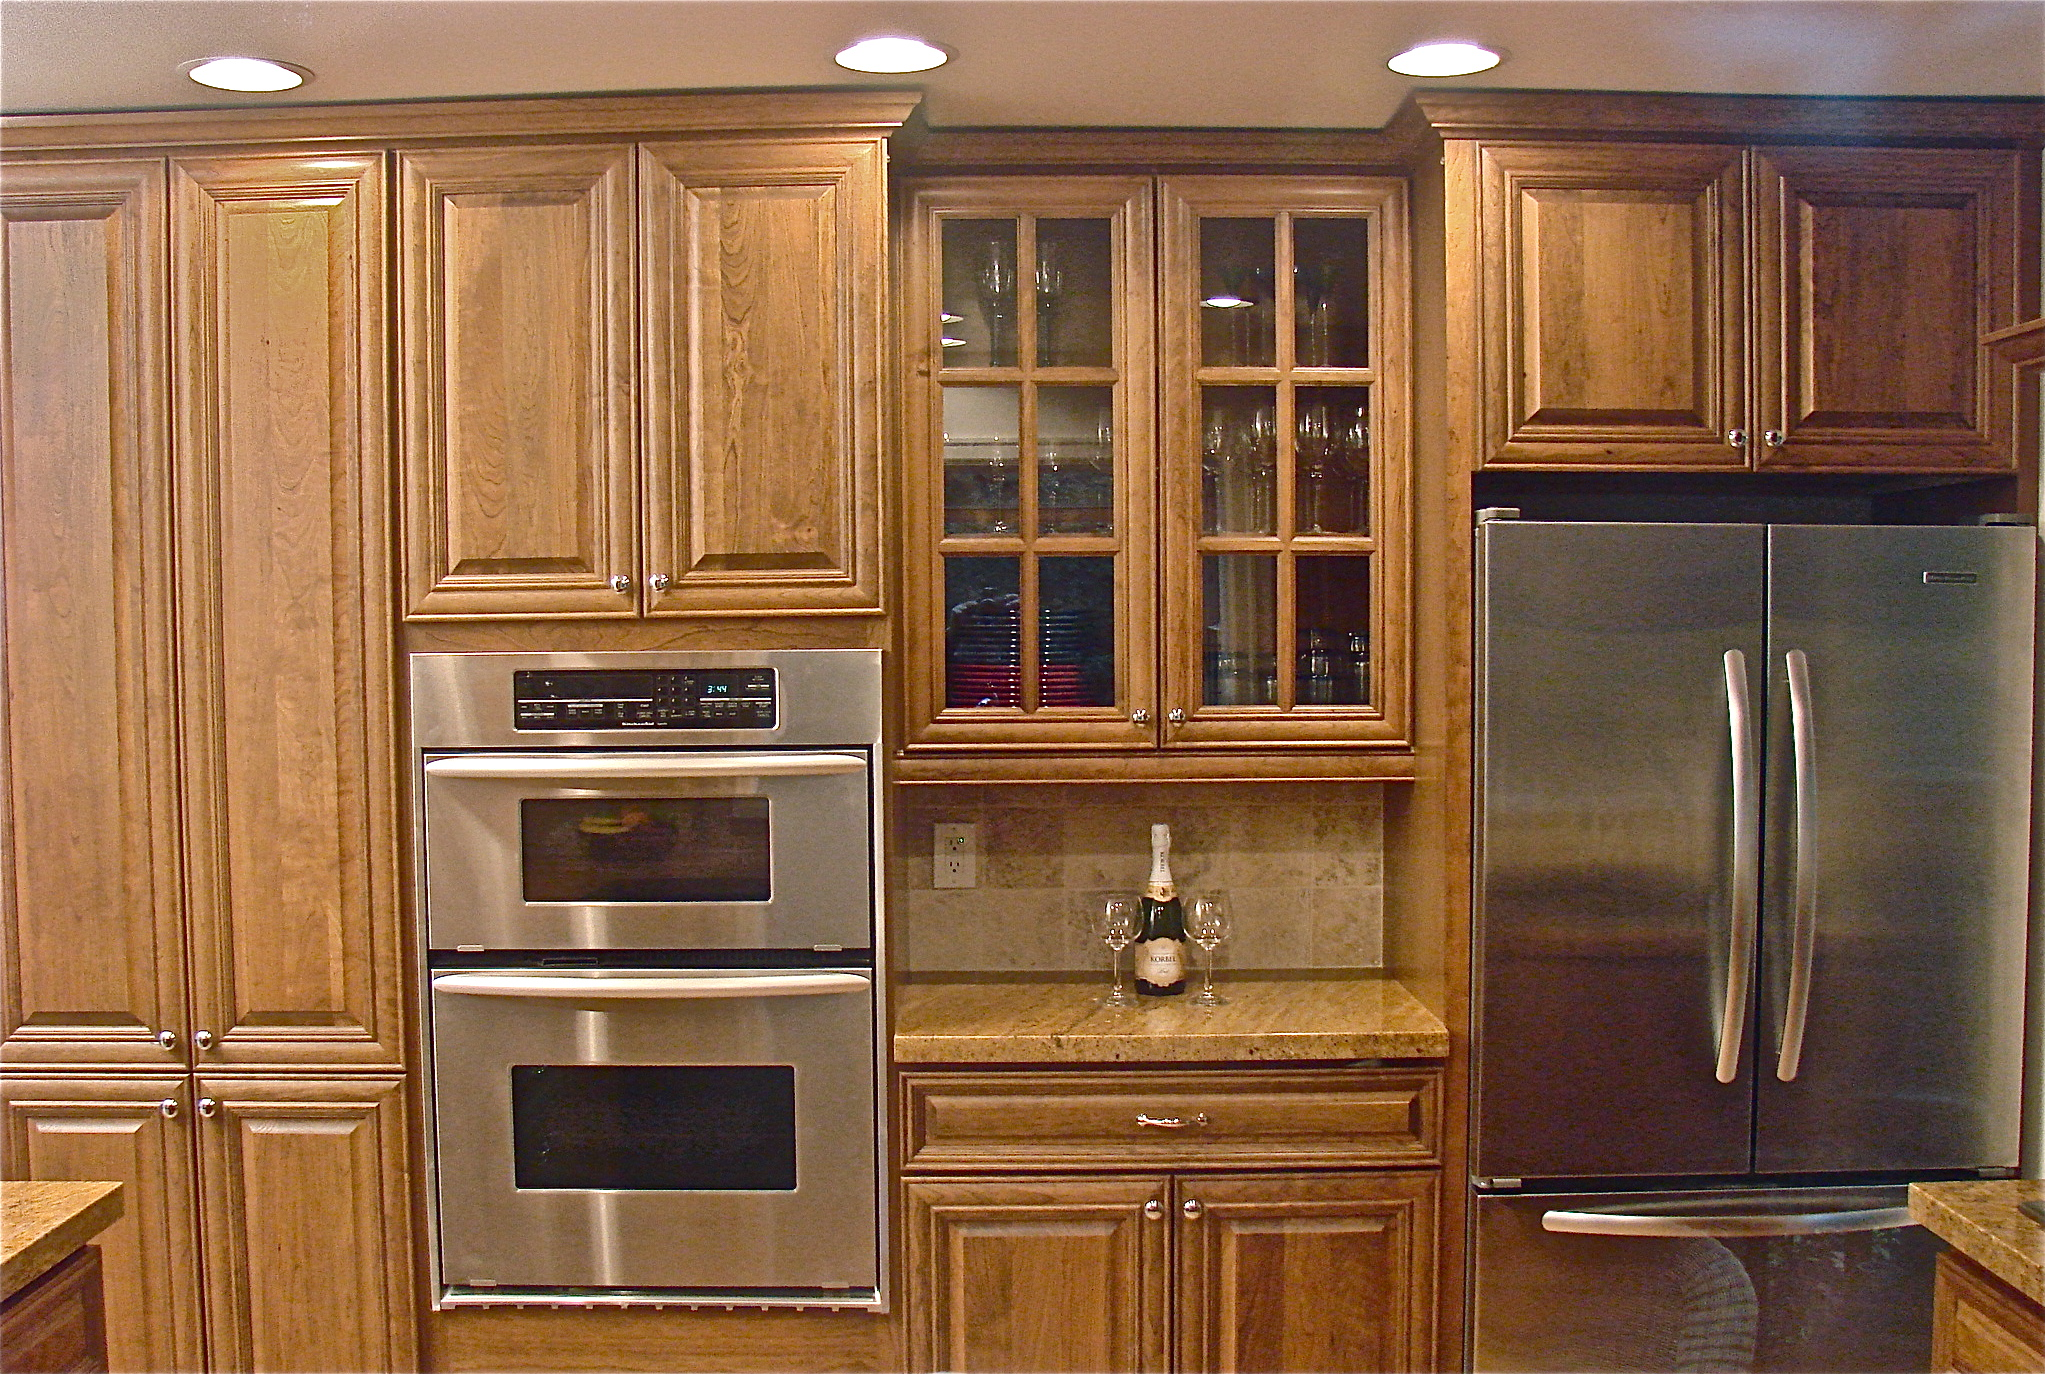 Kitchen cabinet stain colors home depot kitchen cabinet stain kitchen  cabinet stain colors home depot photo  kitchen cabinet   Intelligent Kitchen Cabinet Stain Cabinet  . Restaining Cabinets Home Depot. Home Design Ideas